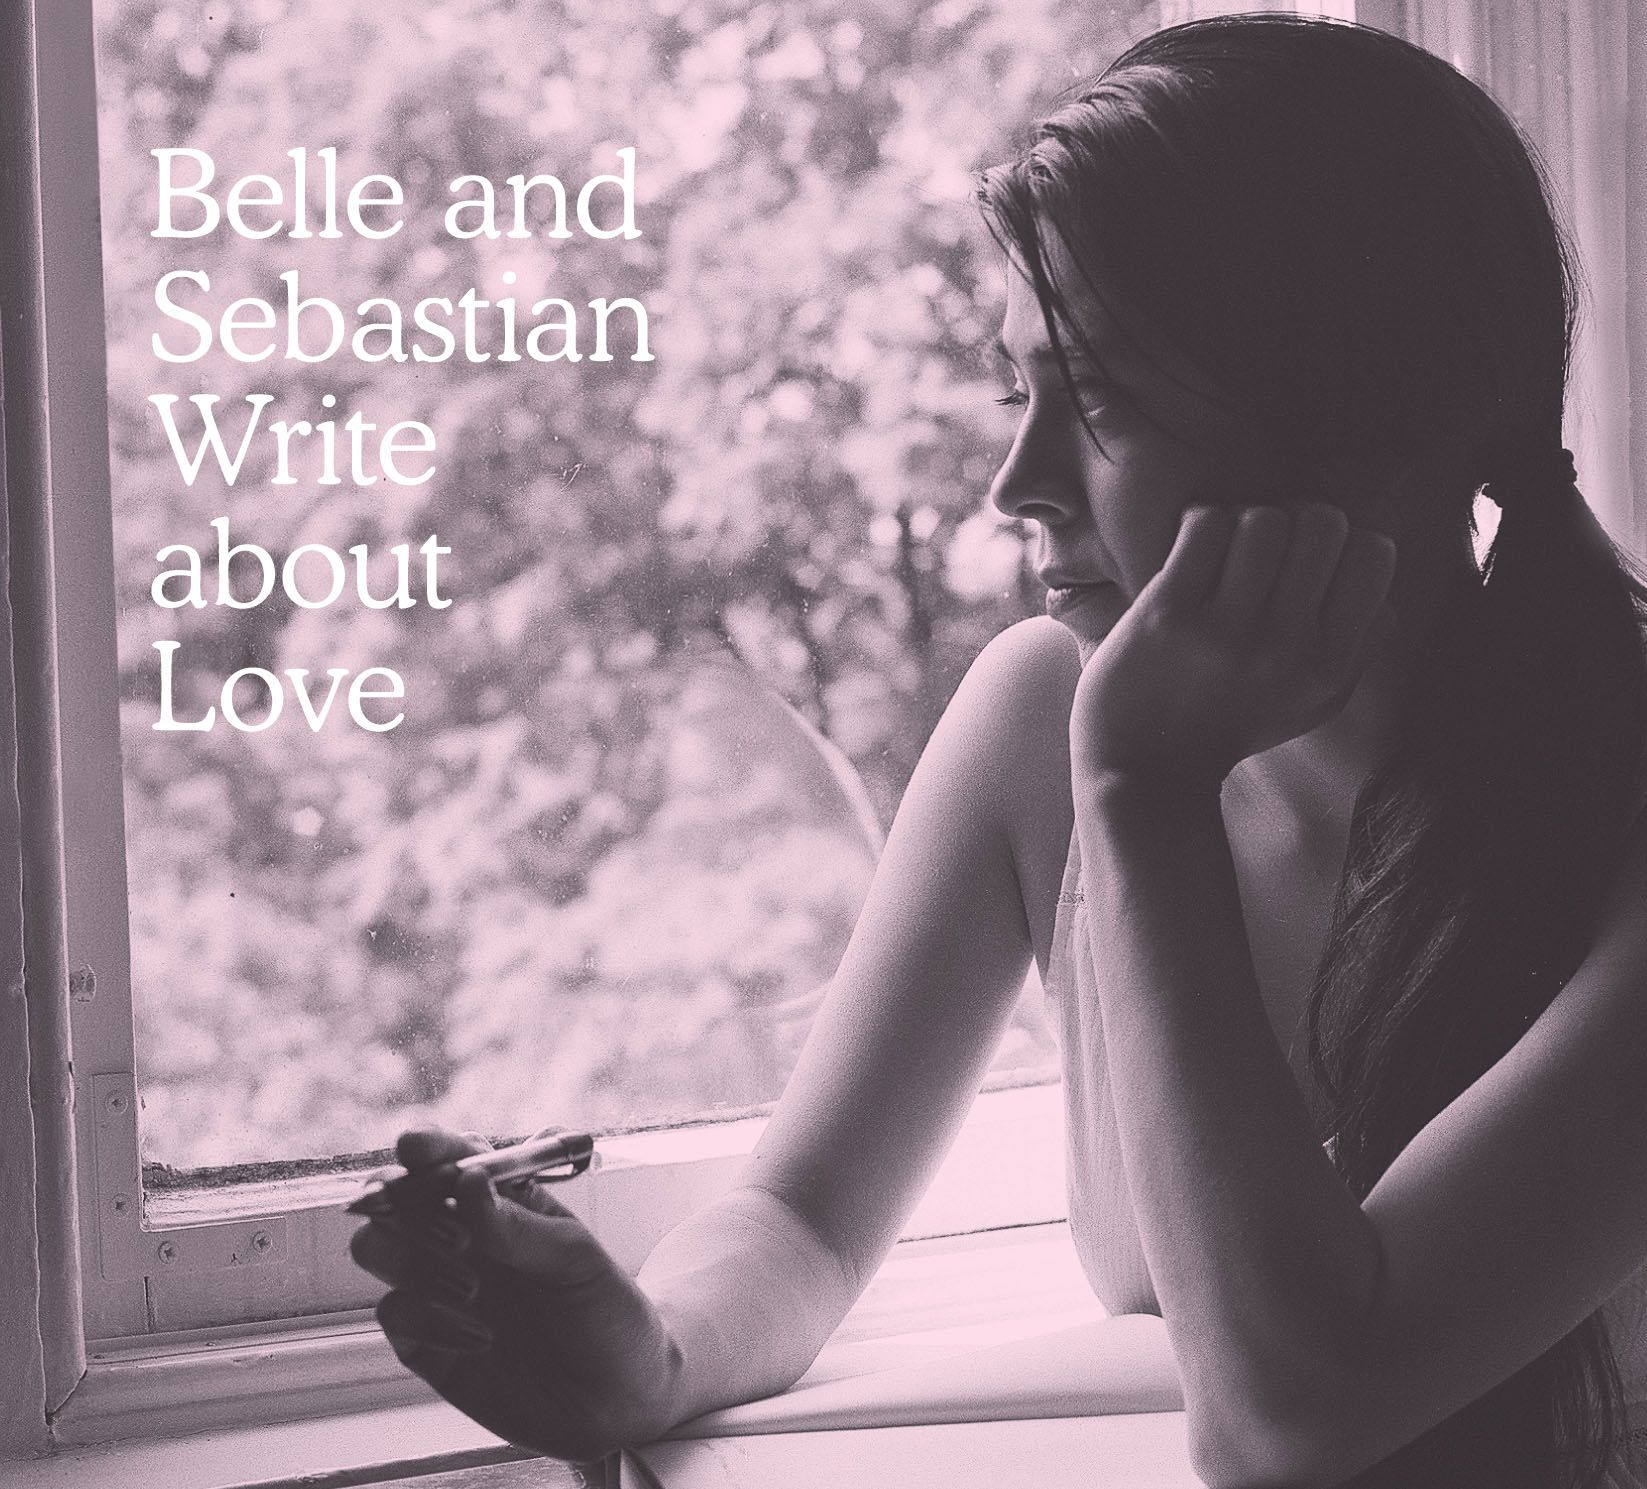 Belle And Sebastian - Write About Love album cover